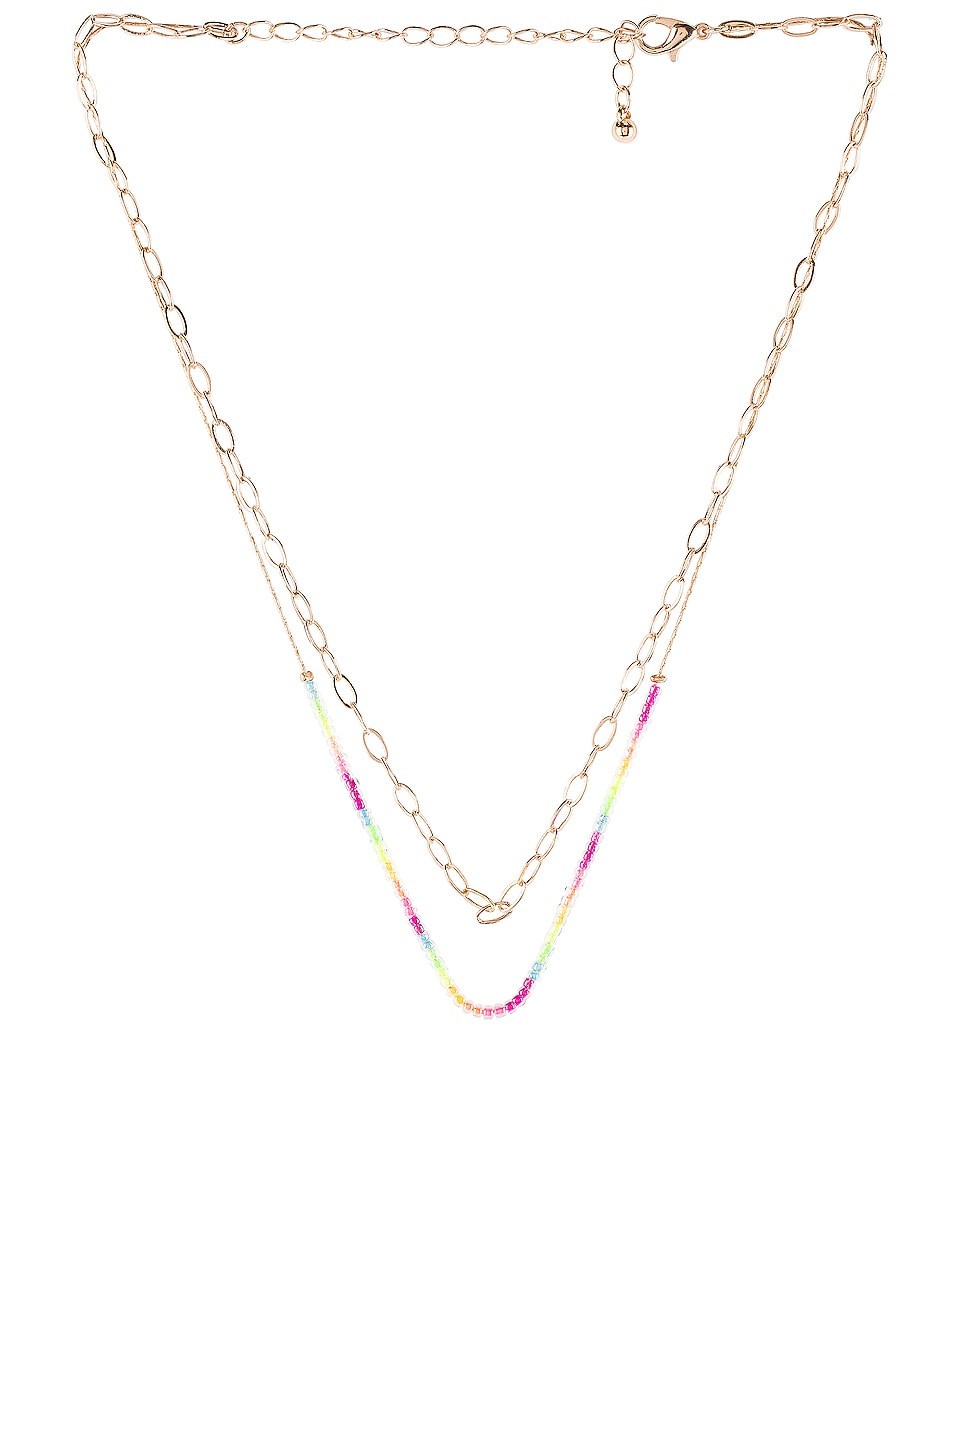 How to accessorize 2020: 8 Other Reasons Layered Chain and Neon Bead Necklace